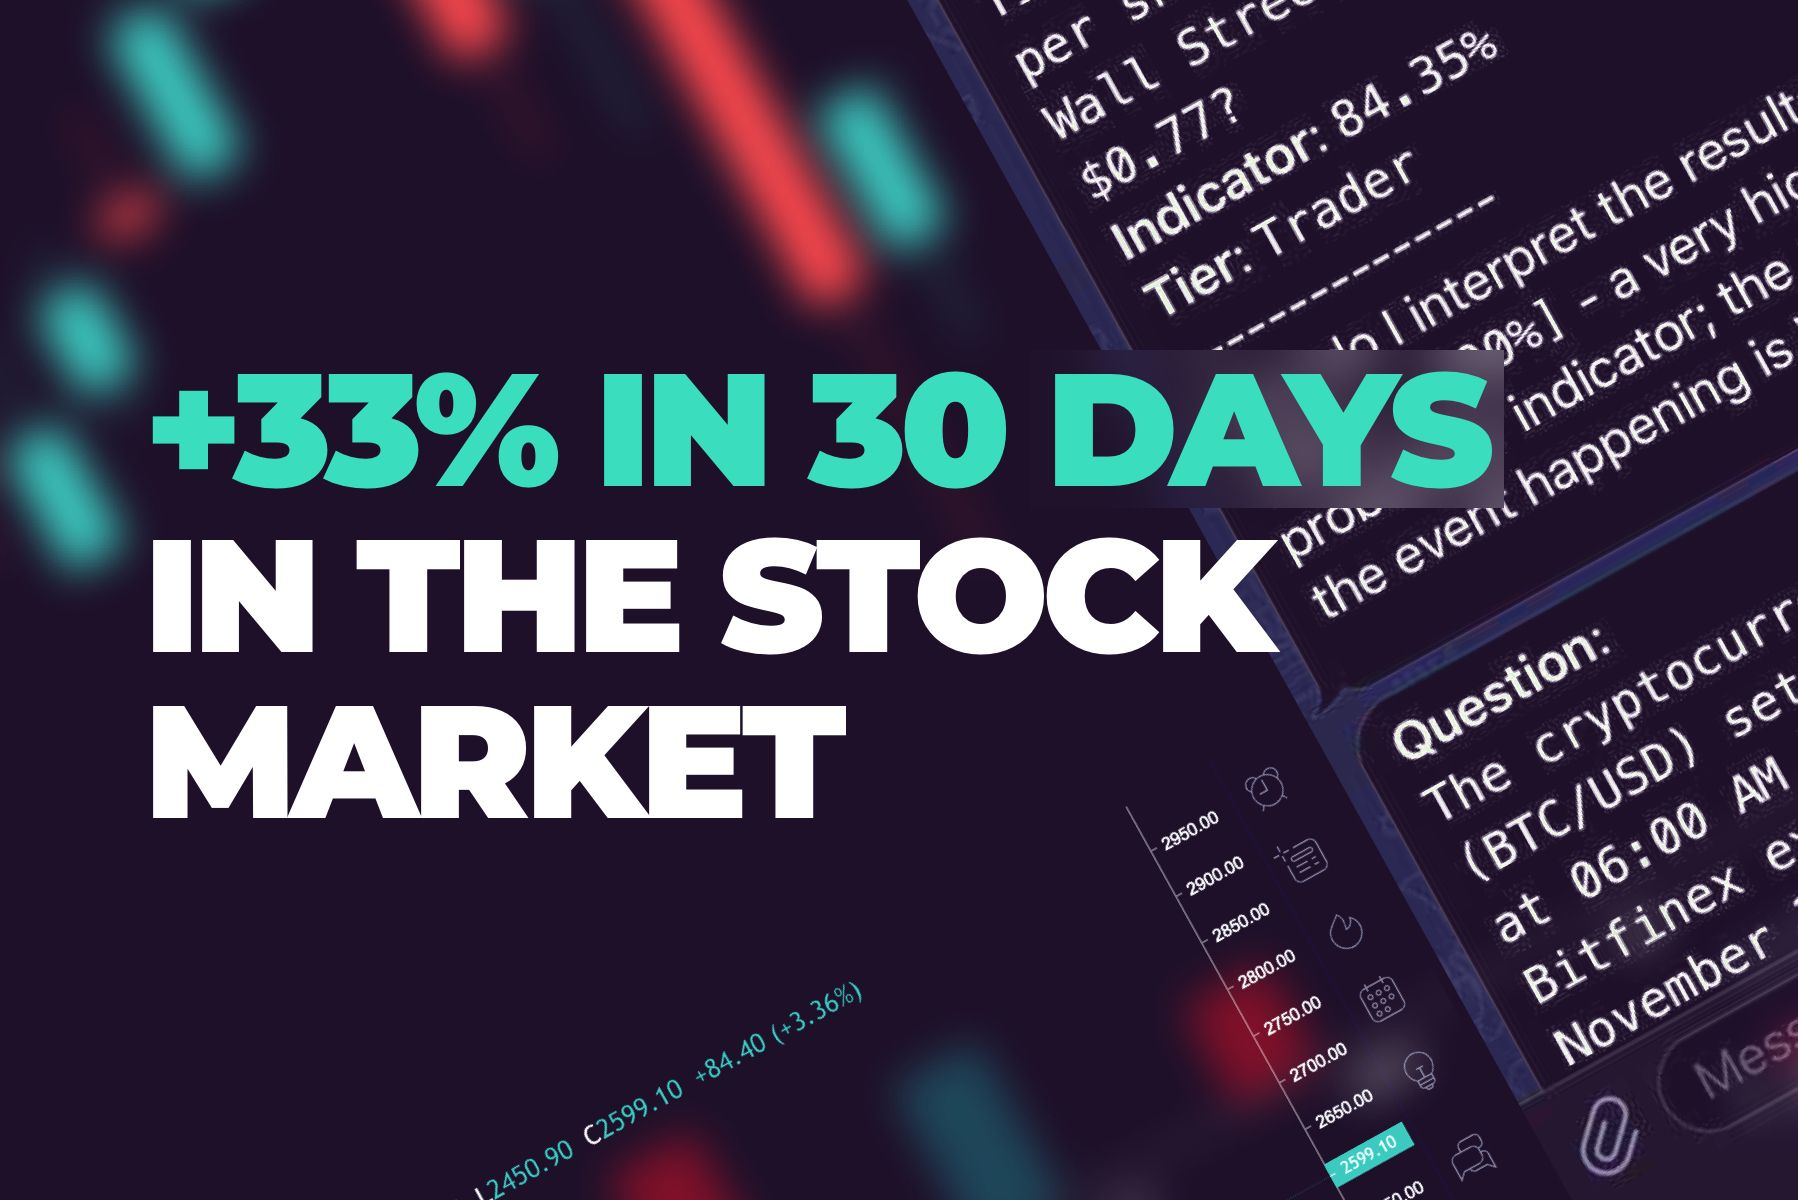 Cindicator: How a Crypto Tool Helped Me Make 33% in 30 days in the Stock Market